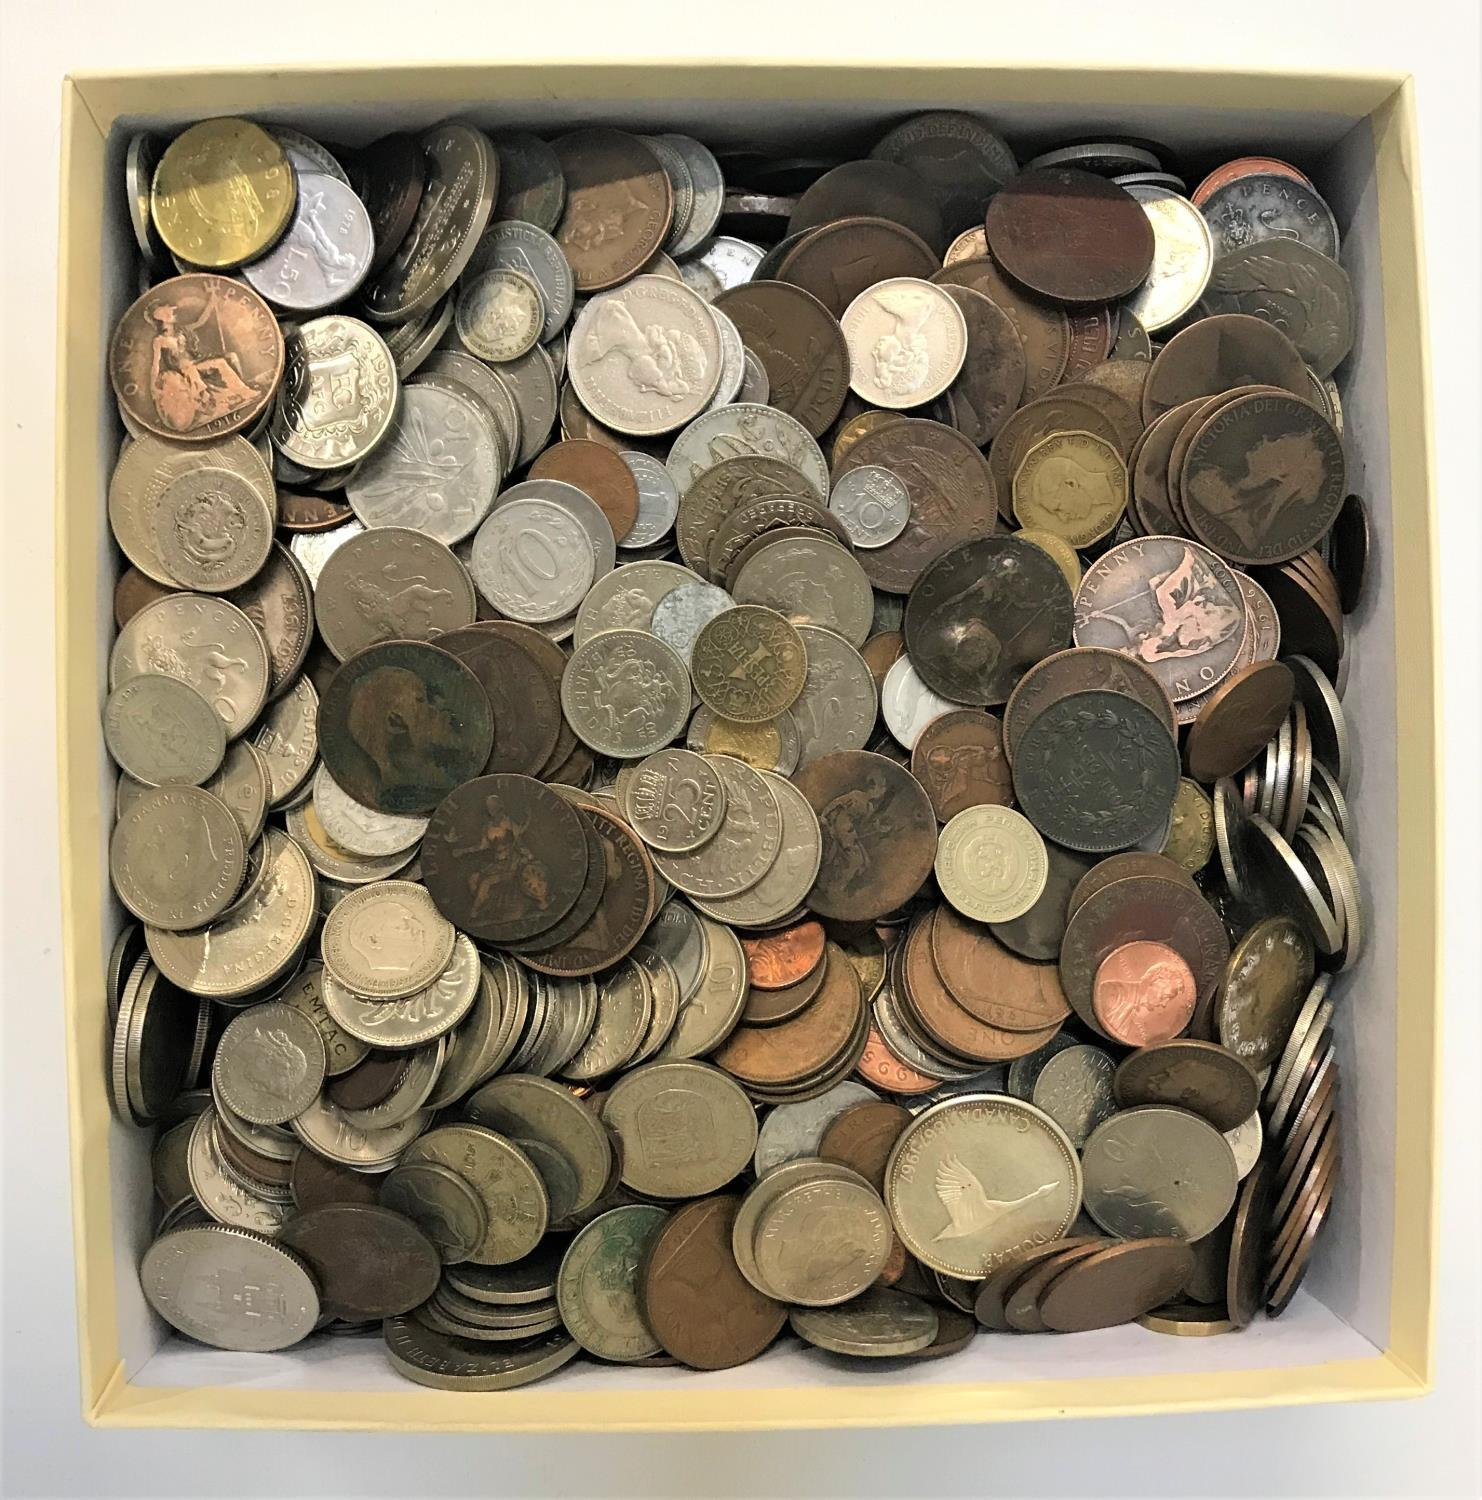 Lot 360 - LARGE SELECTION OF BRITISH AND WORLD COINS including a 1795 Half Penny, various Victorian and